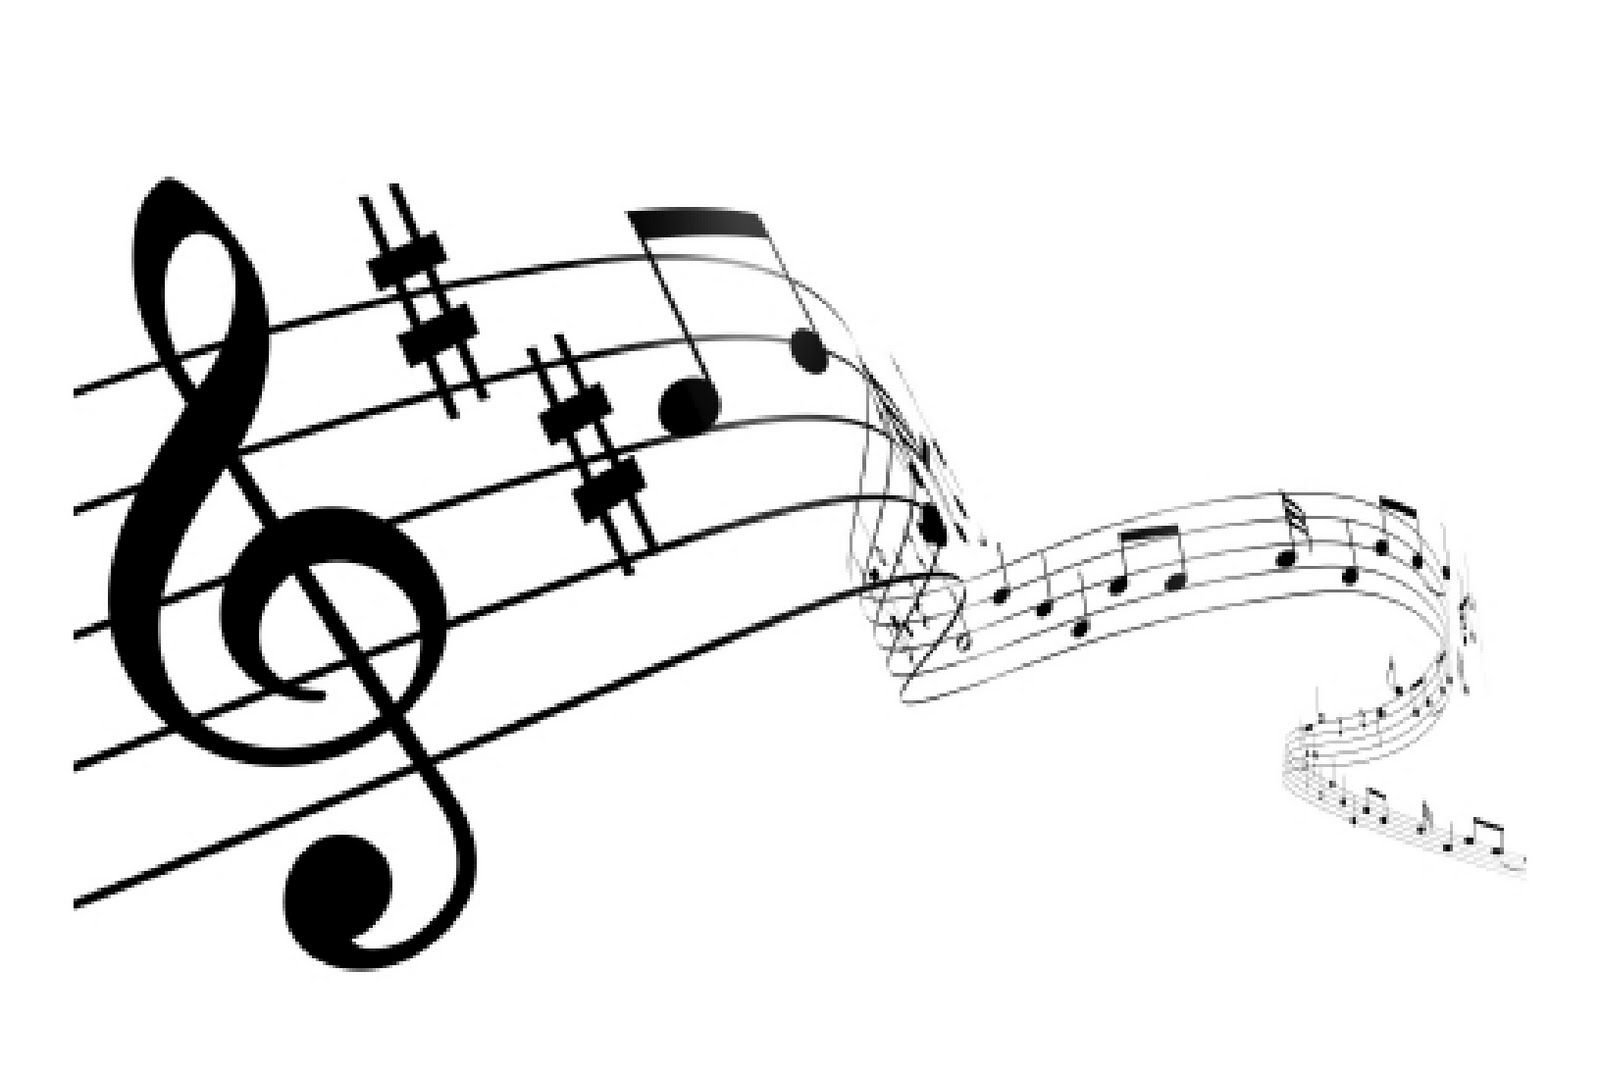 Music notes resemble the symbols and marks of music in order to music notes resemble the symbols and marks of music in order to describe the pitch biocorpaavc